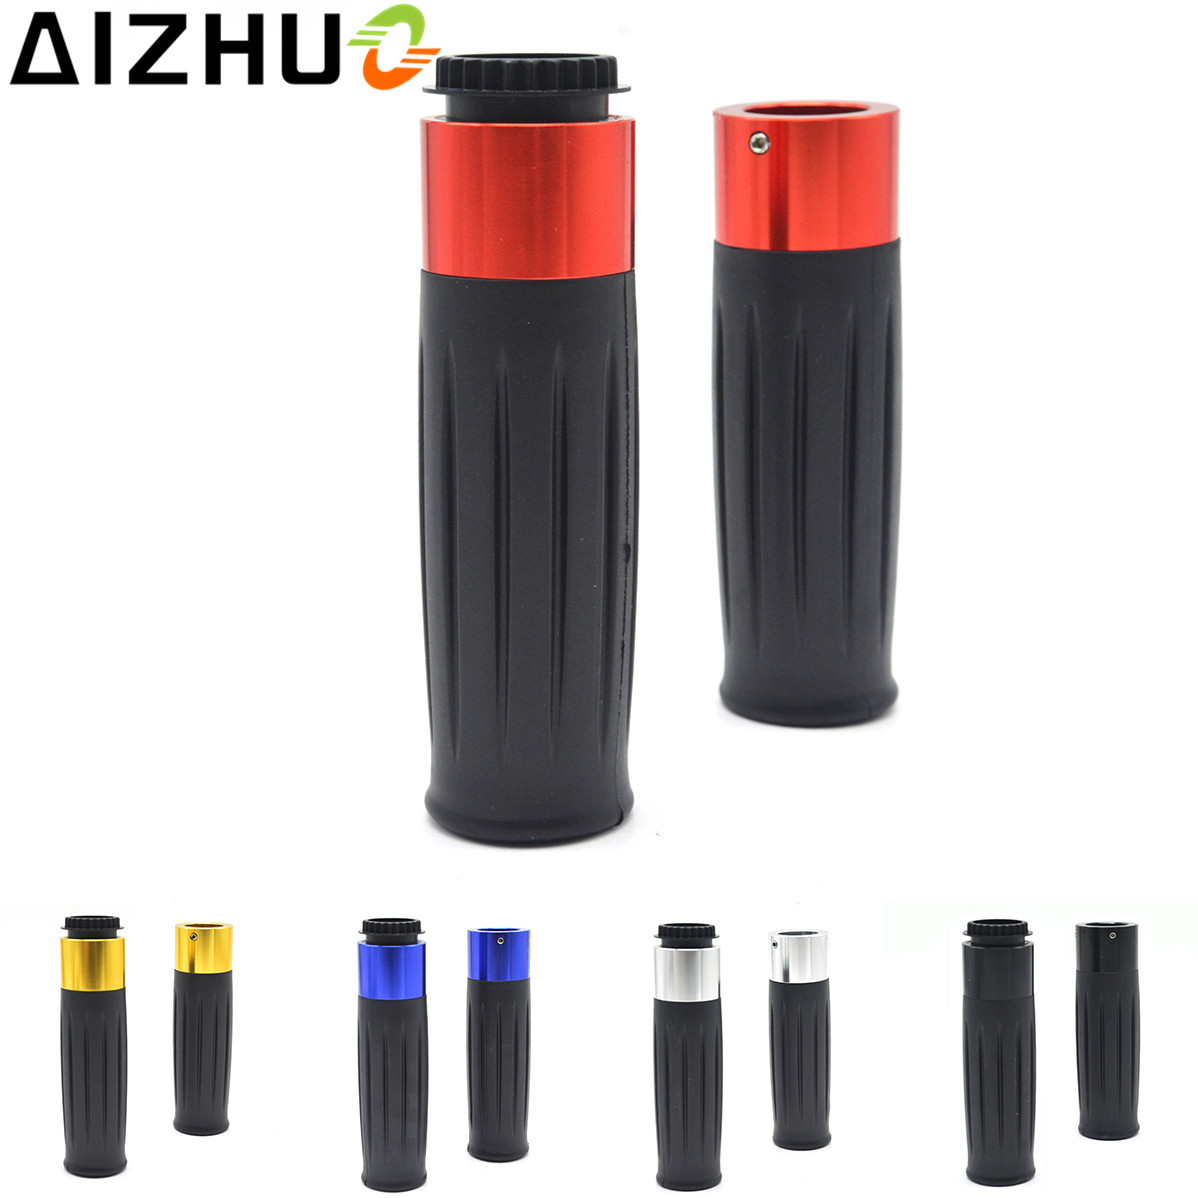 """7/8"""" 22mm Motorcycle Handle Grip CNC Aluminum Handle Bar Grips For KTM Motocross EXC 20 250 300 450 500 SX XC SXF XCW XCF EXCF"""